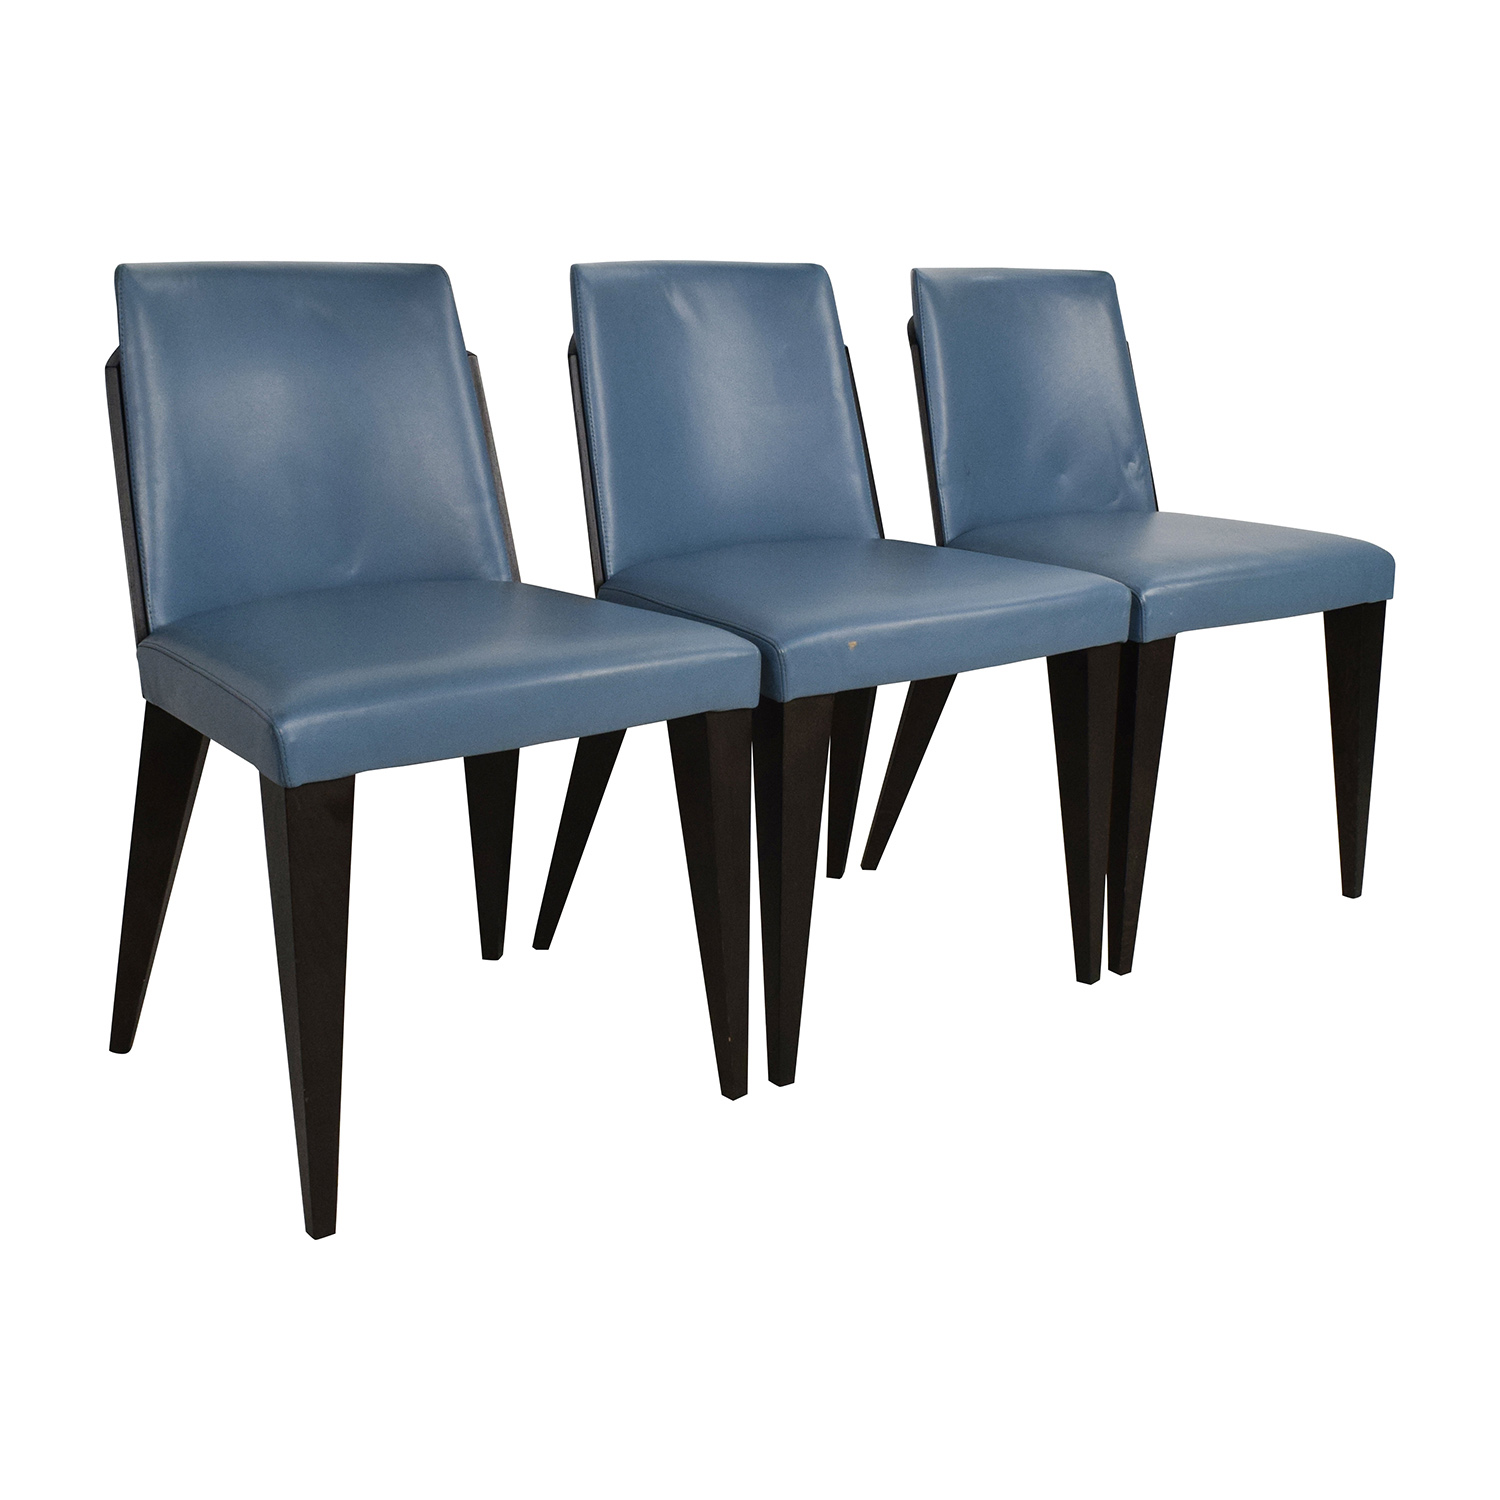 90 OFF  Potocco Potocco Blue Leather Dining Chairs  Chairs